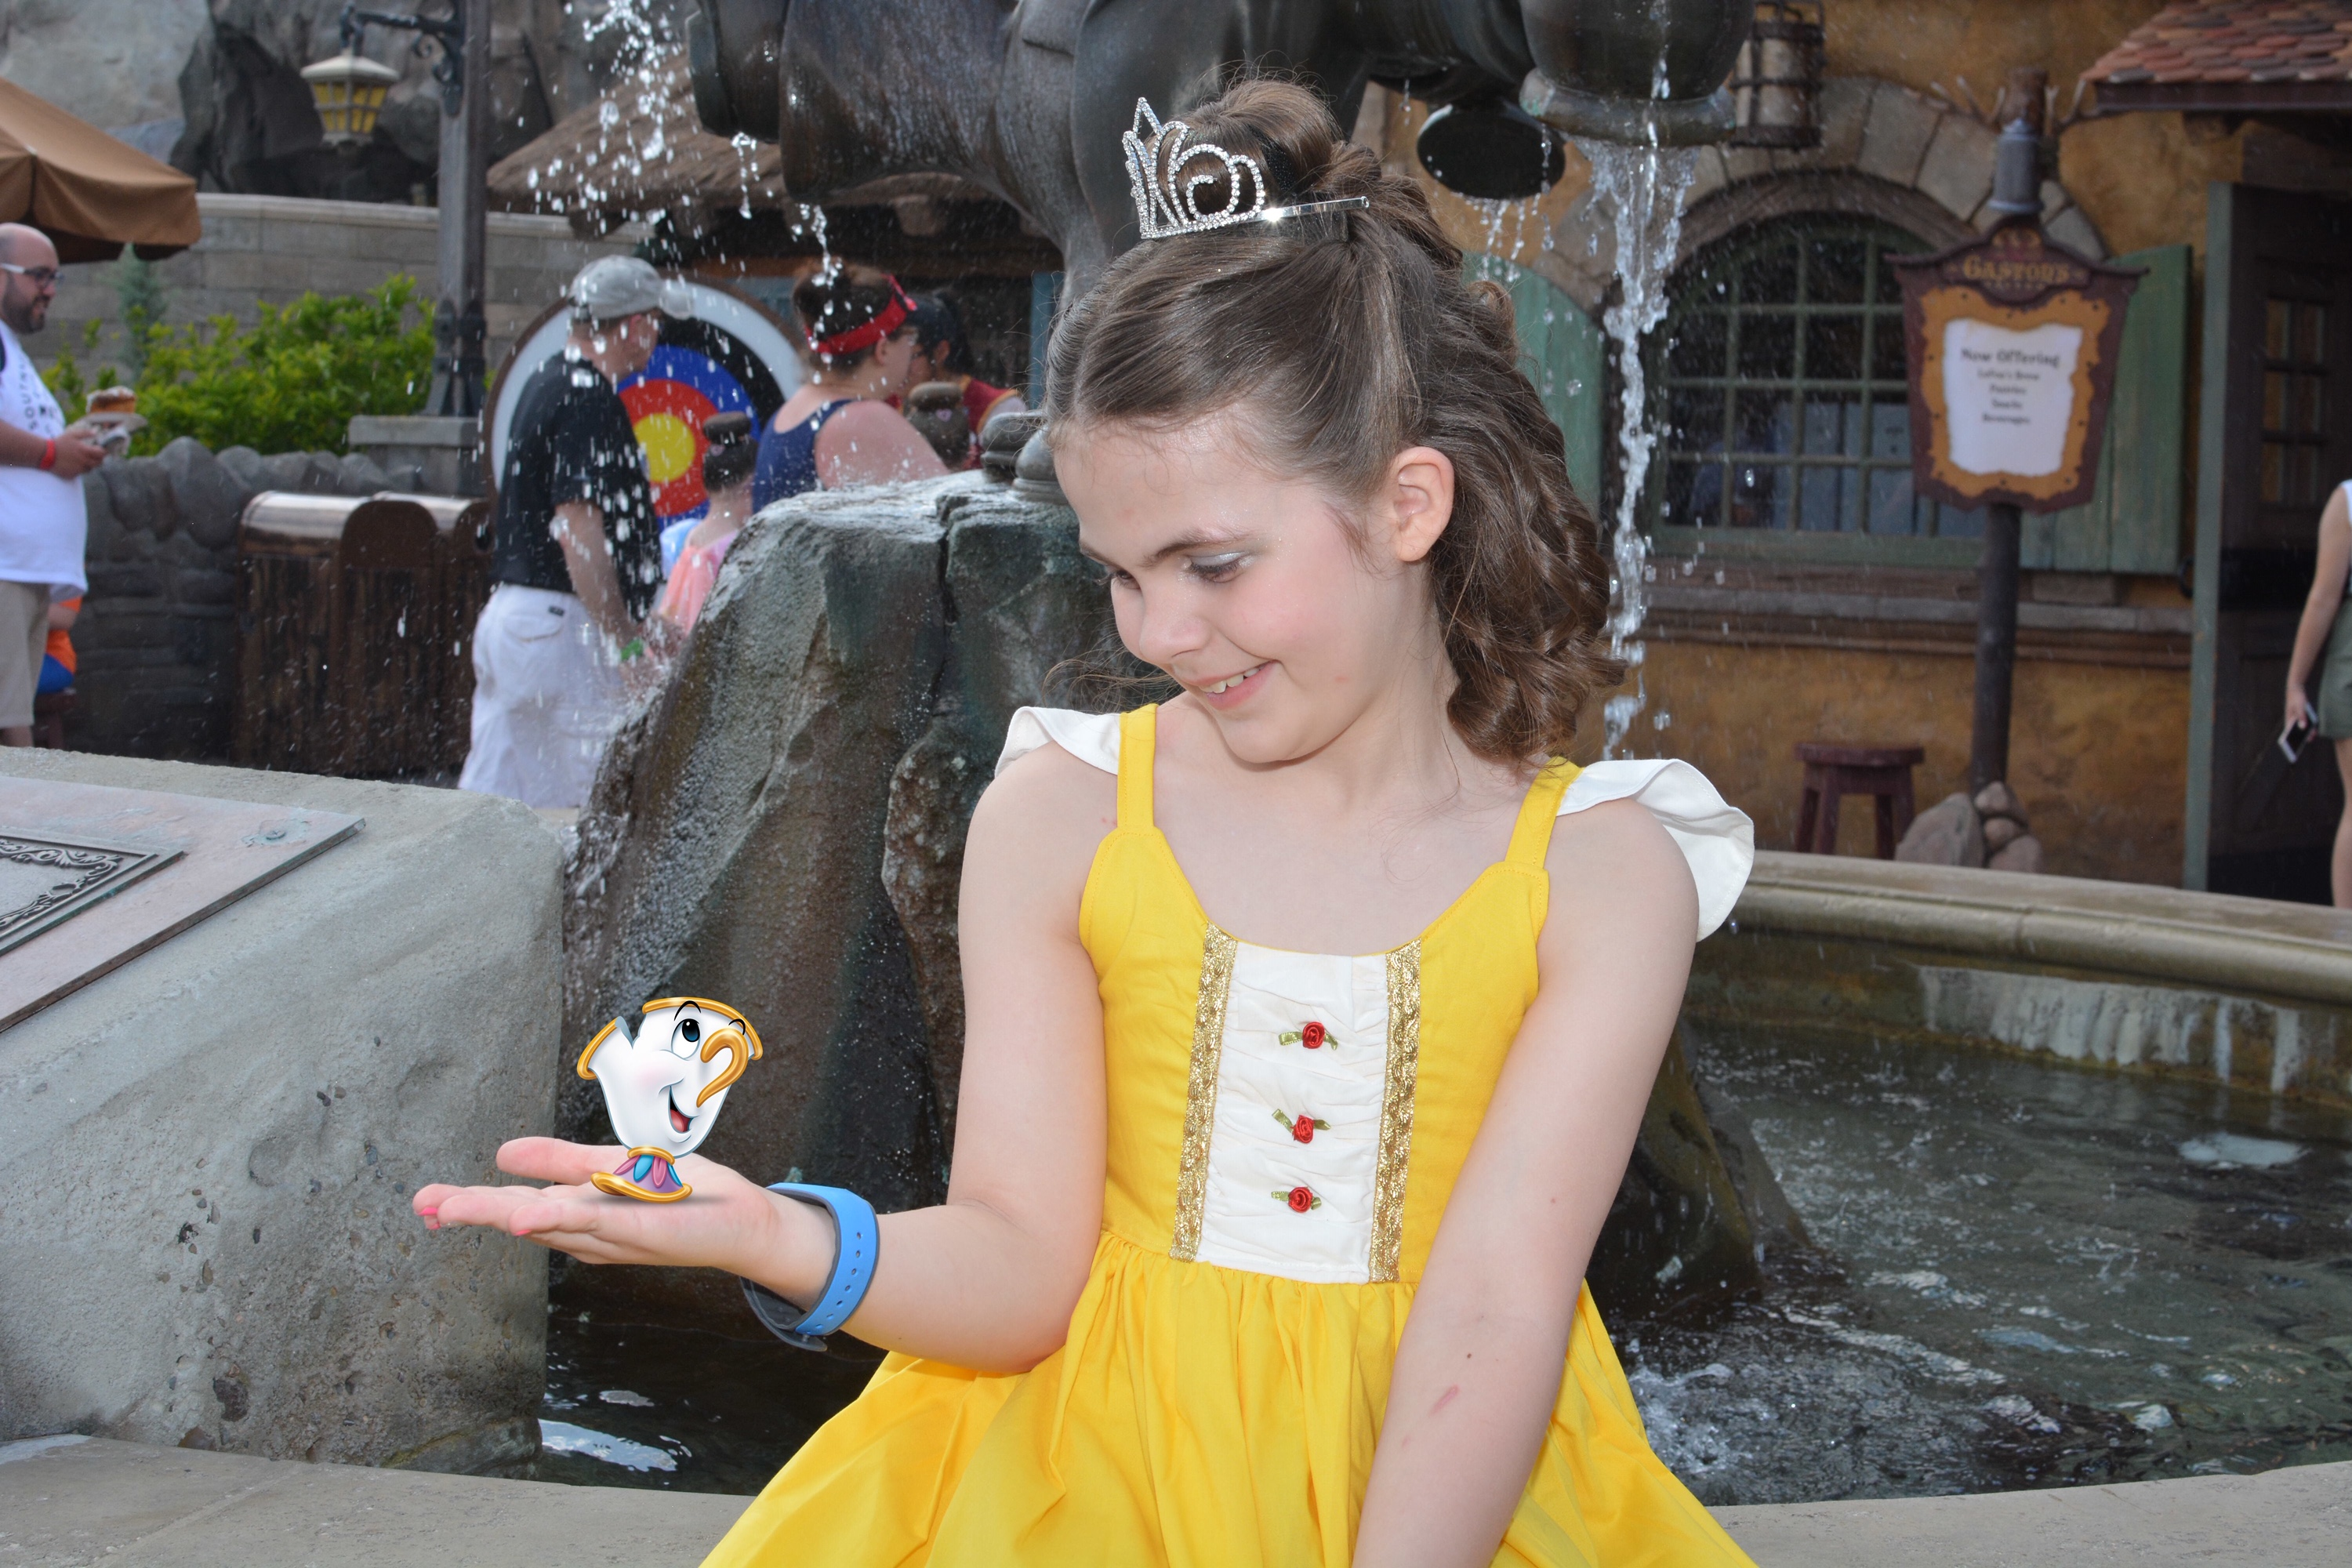 Magic Shots at Walt Disney World: What's Currently Available and Where to Find Them